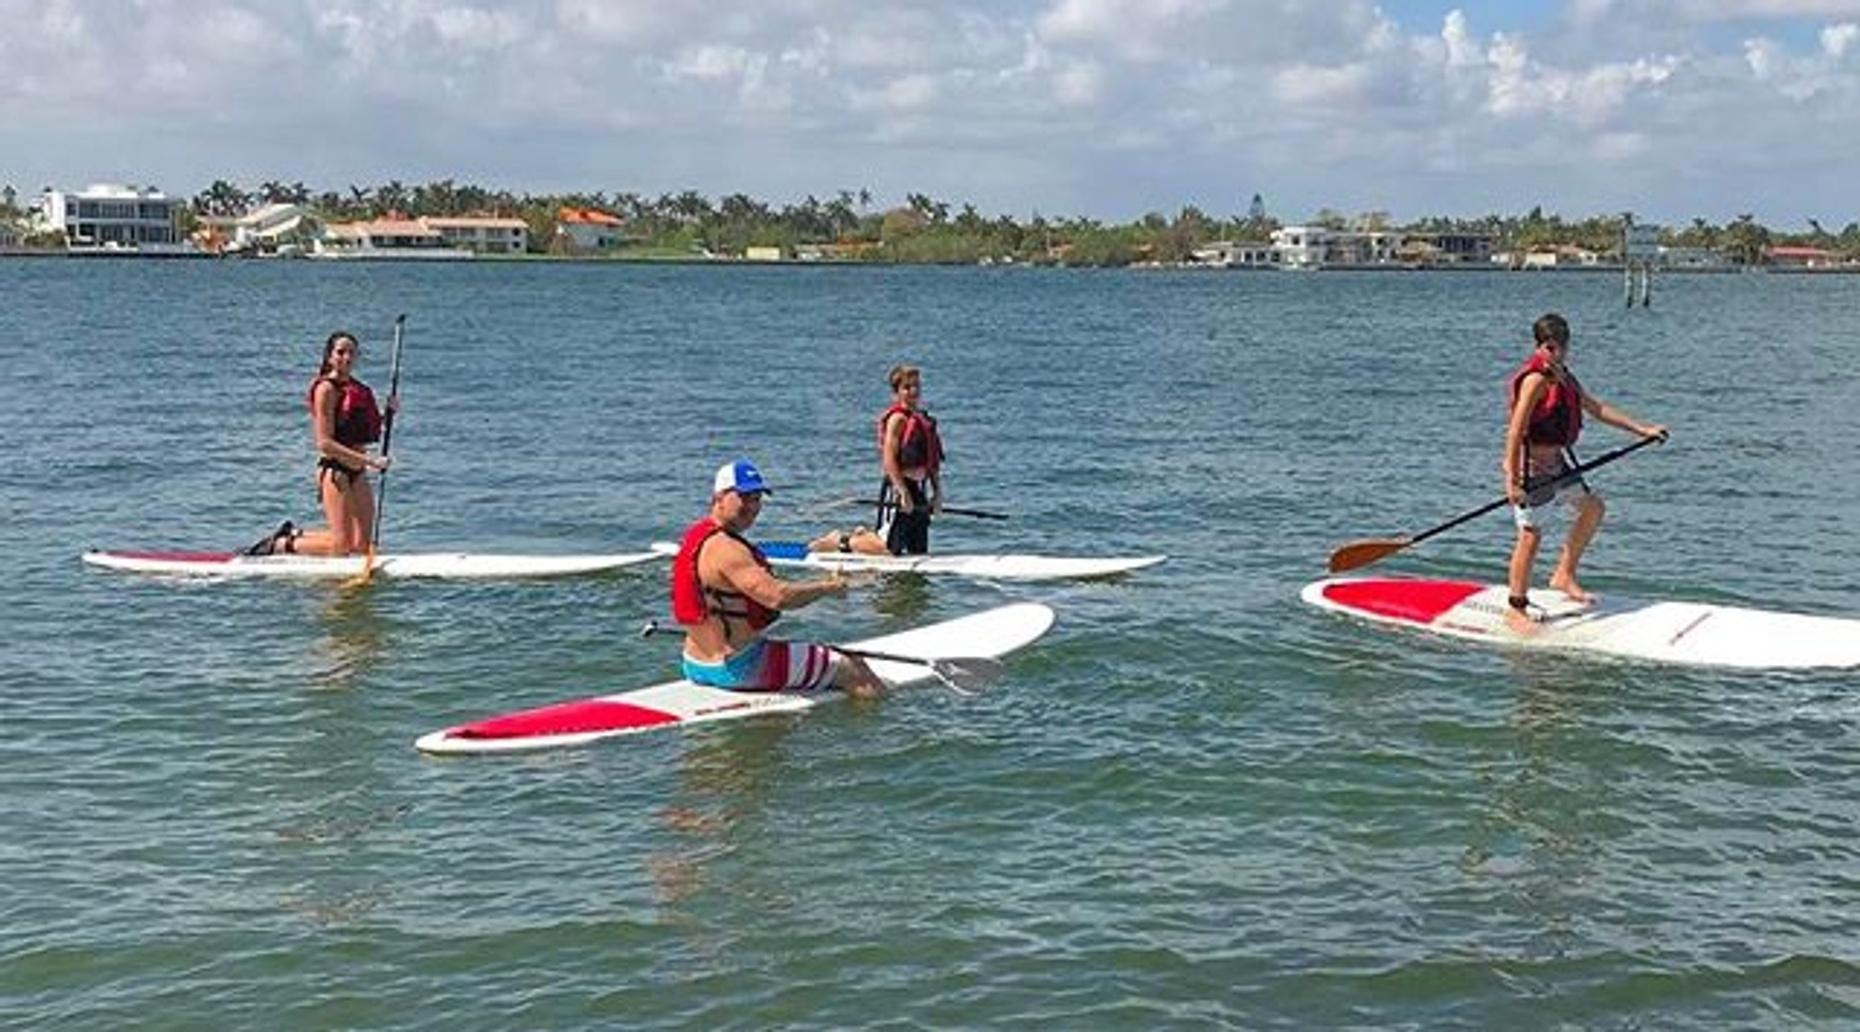 Stand-Up Paddleboarding Lesson & Rental in Miami